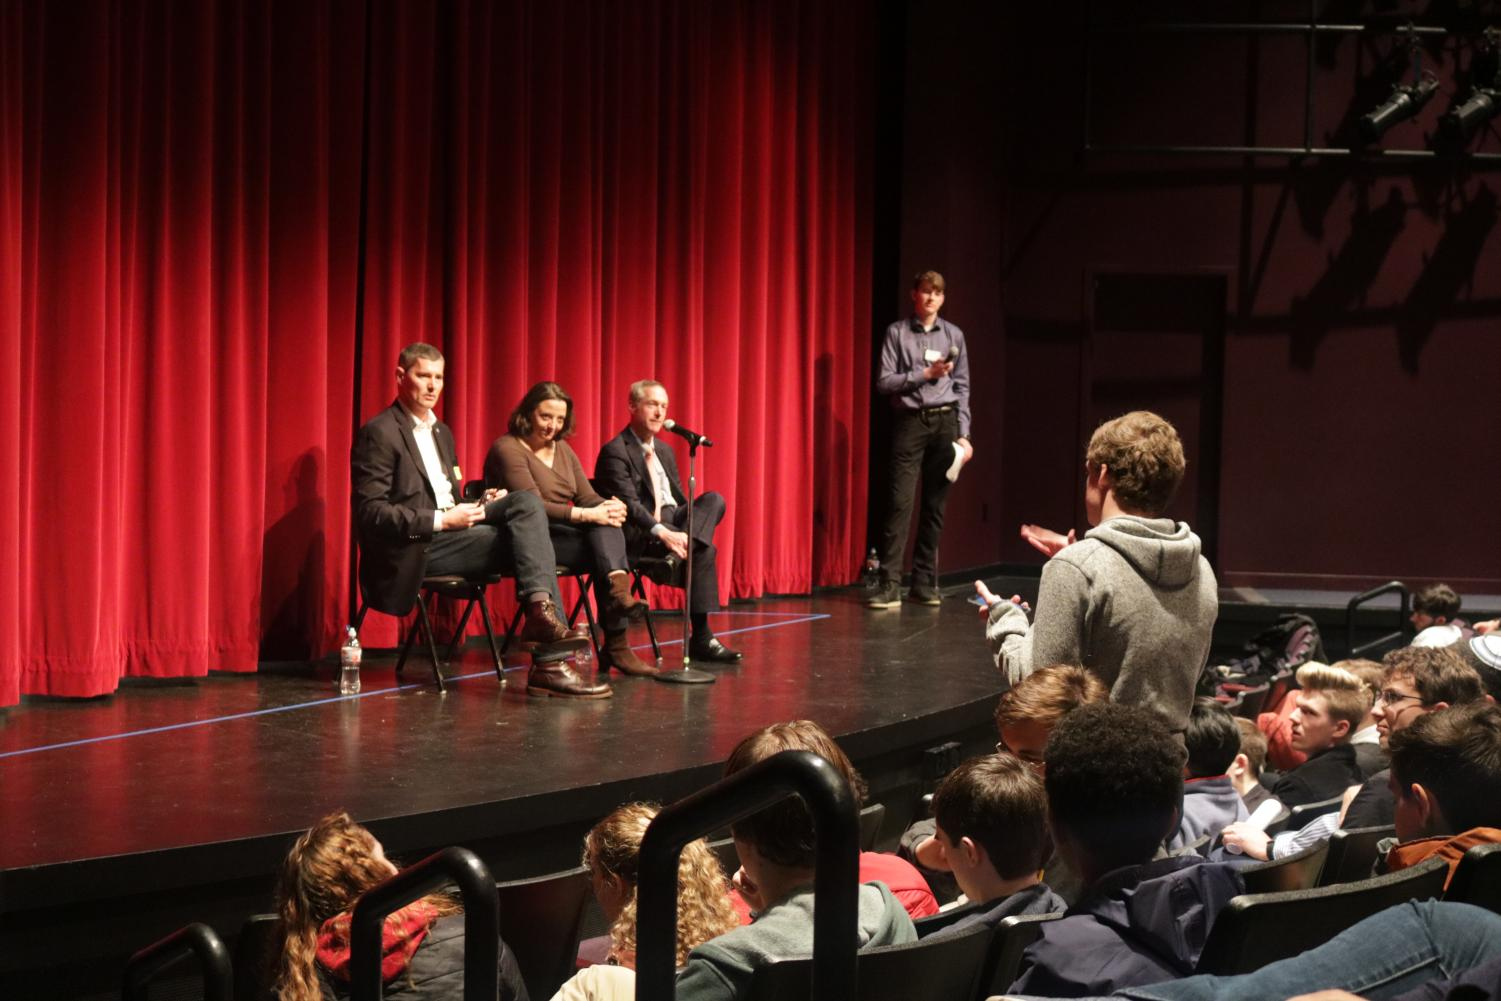 Senior John Higley asks a question to the panel from the Non-Liberal leadership track.